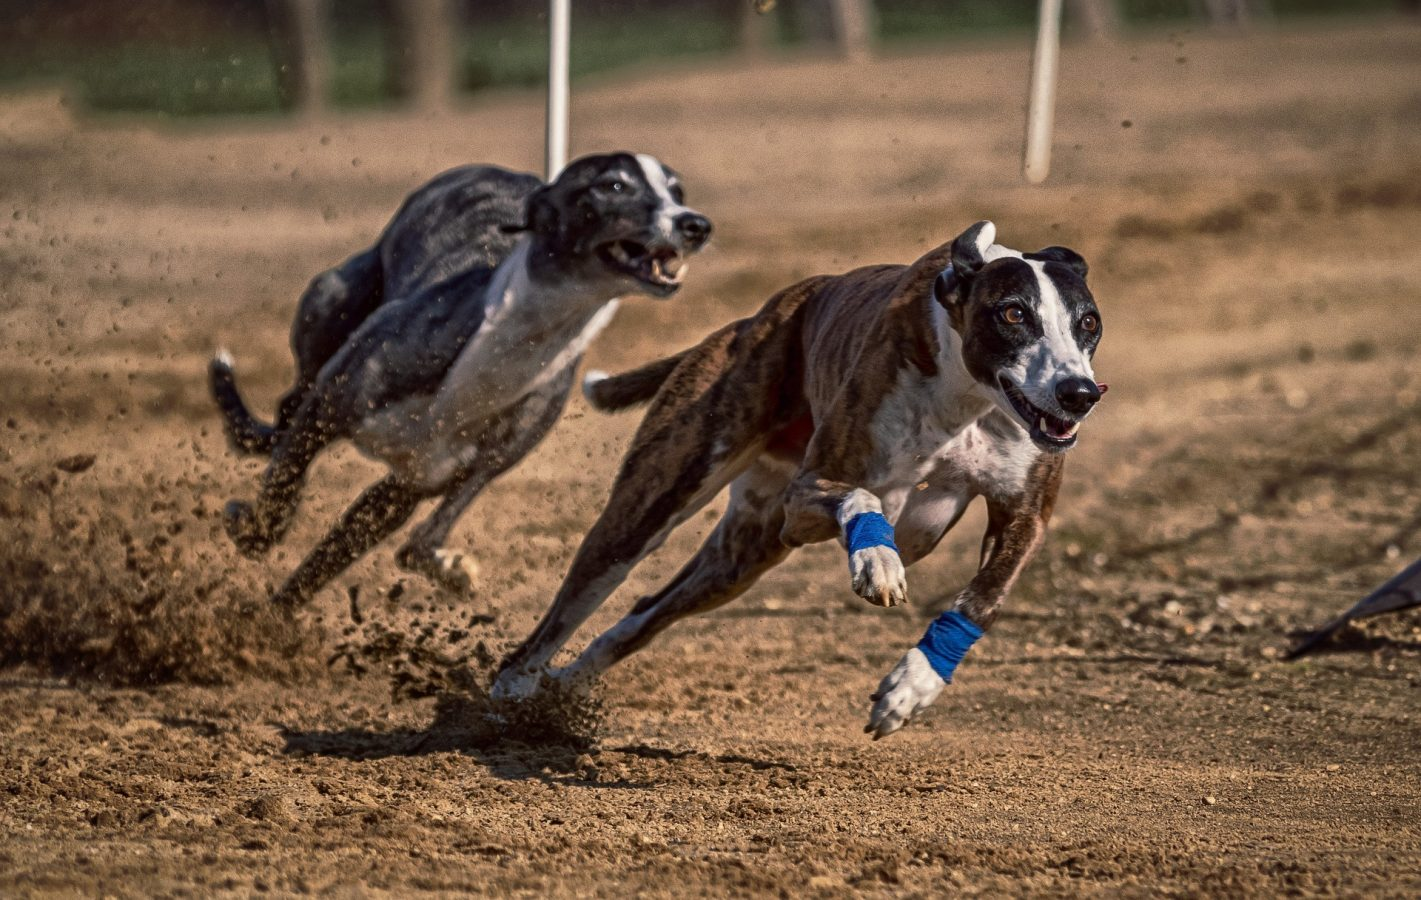 Romford dogs betting on sports green betting